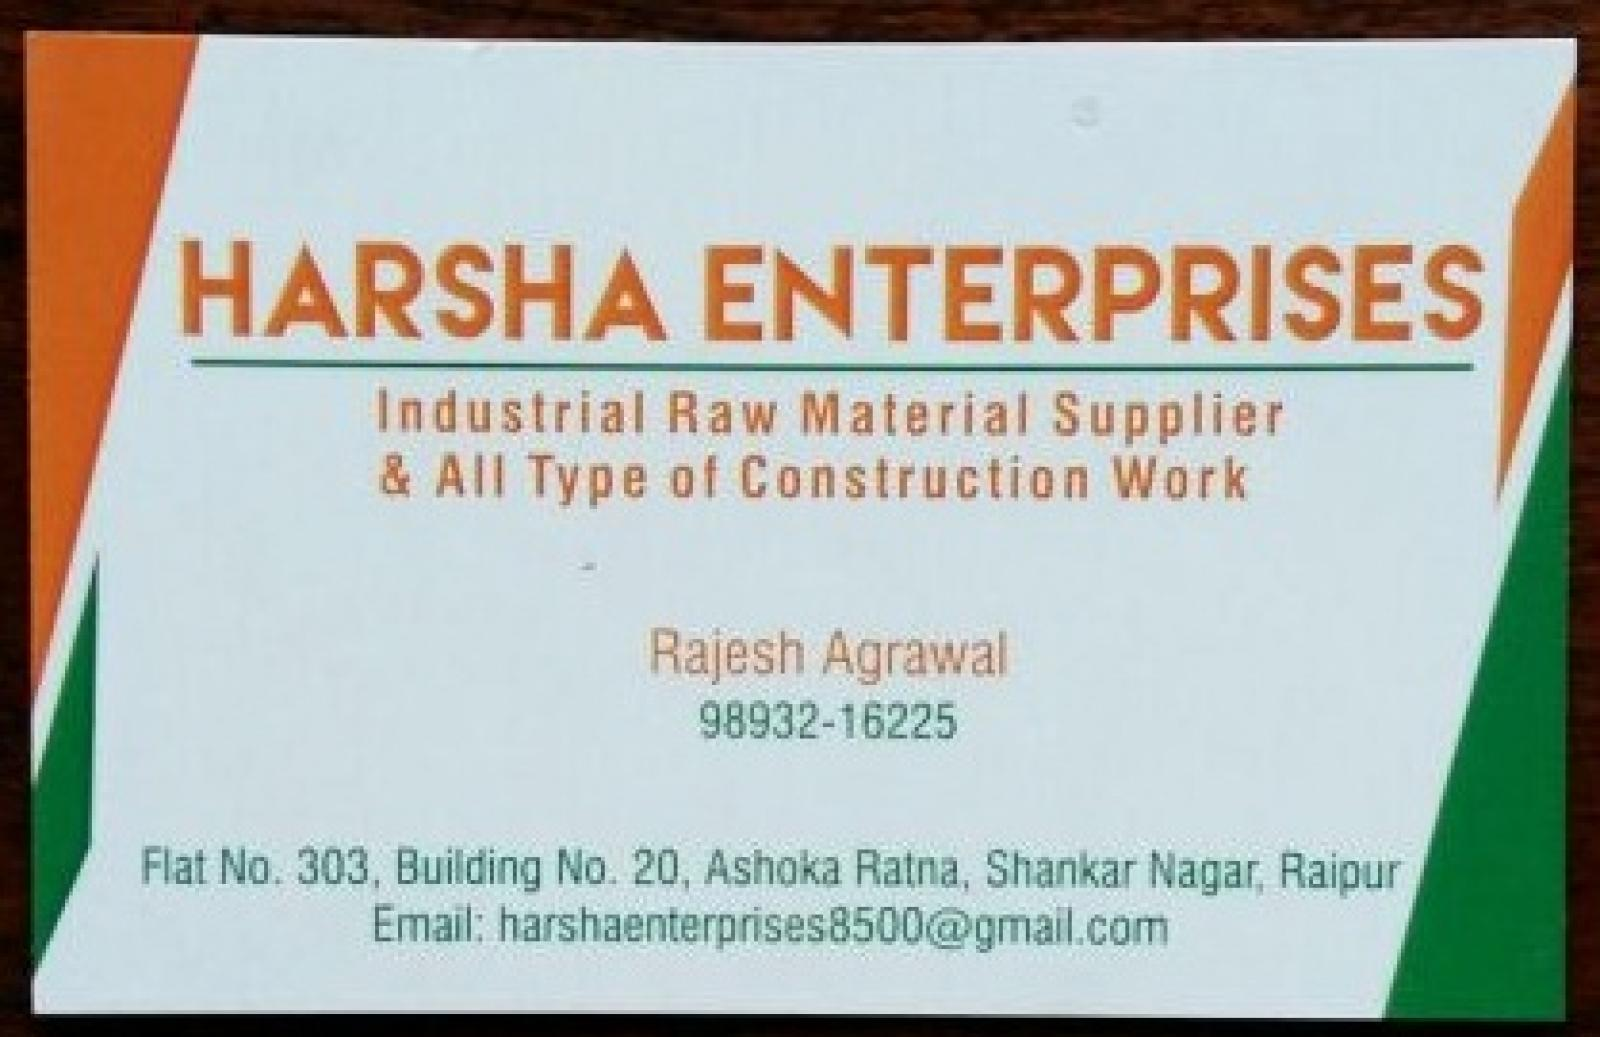 Harsha Enterprises